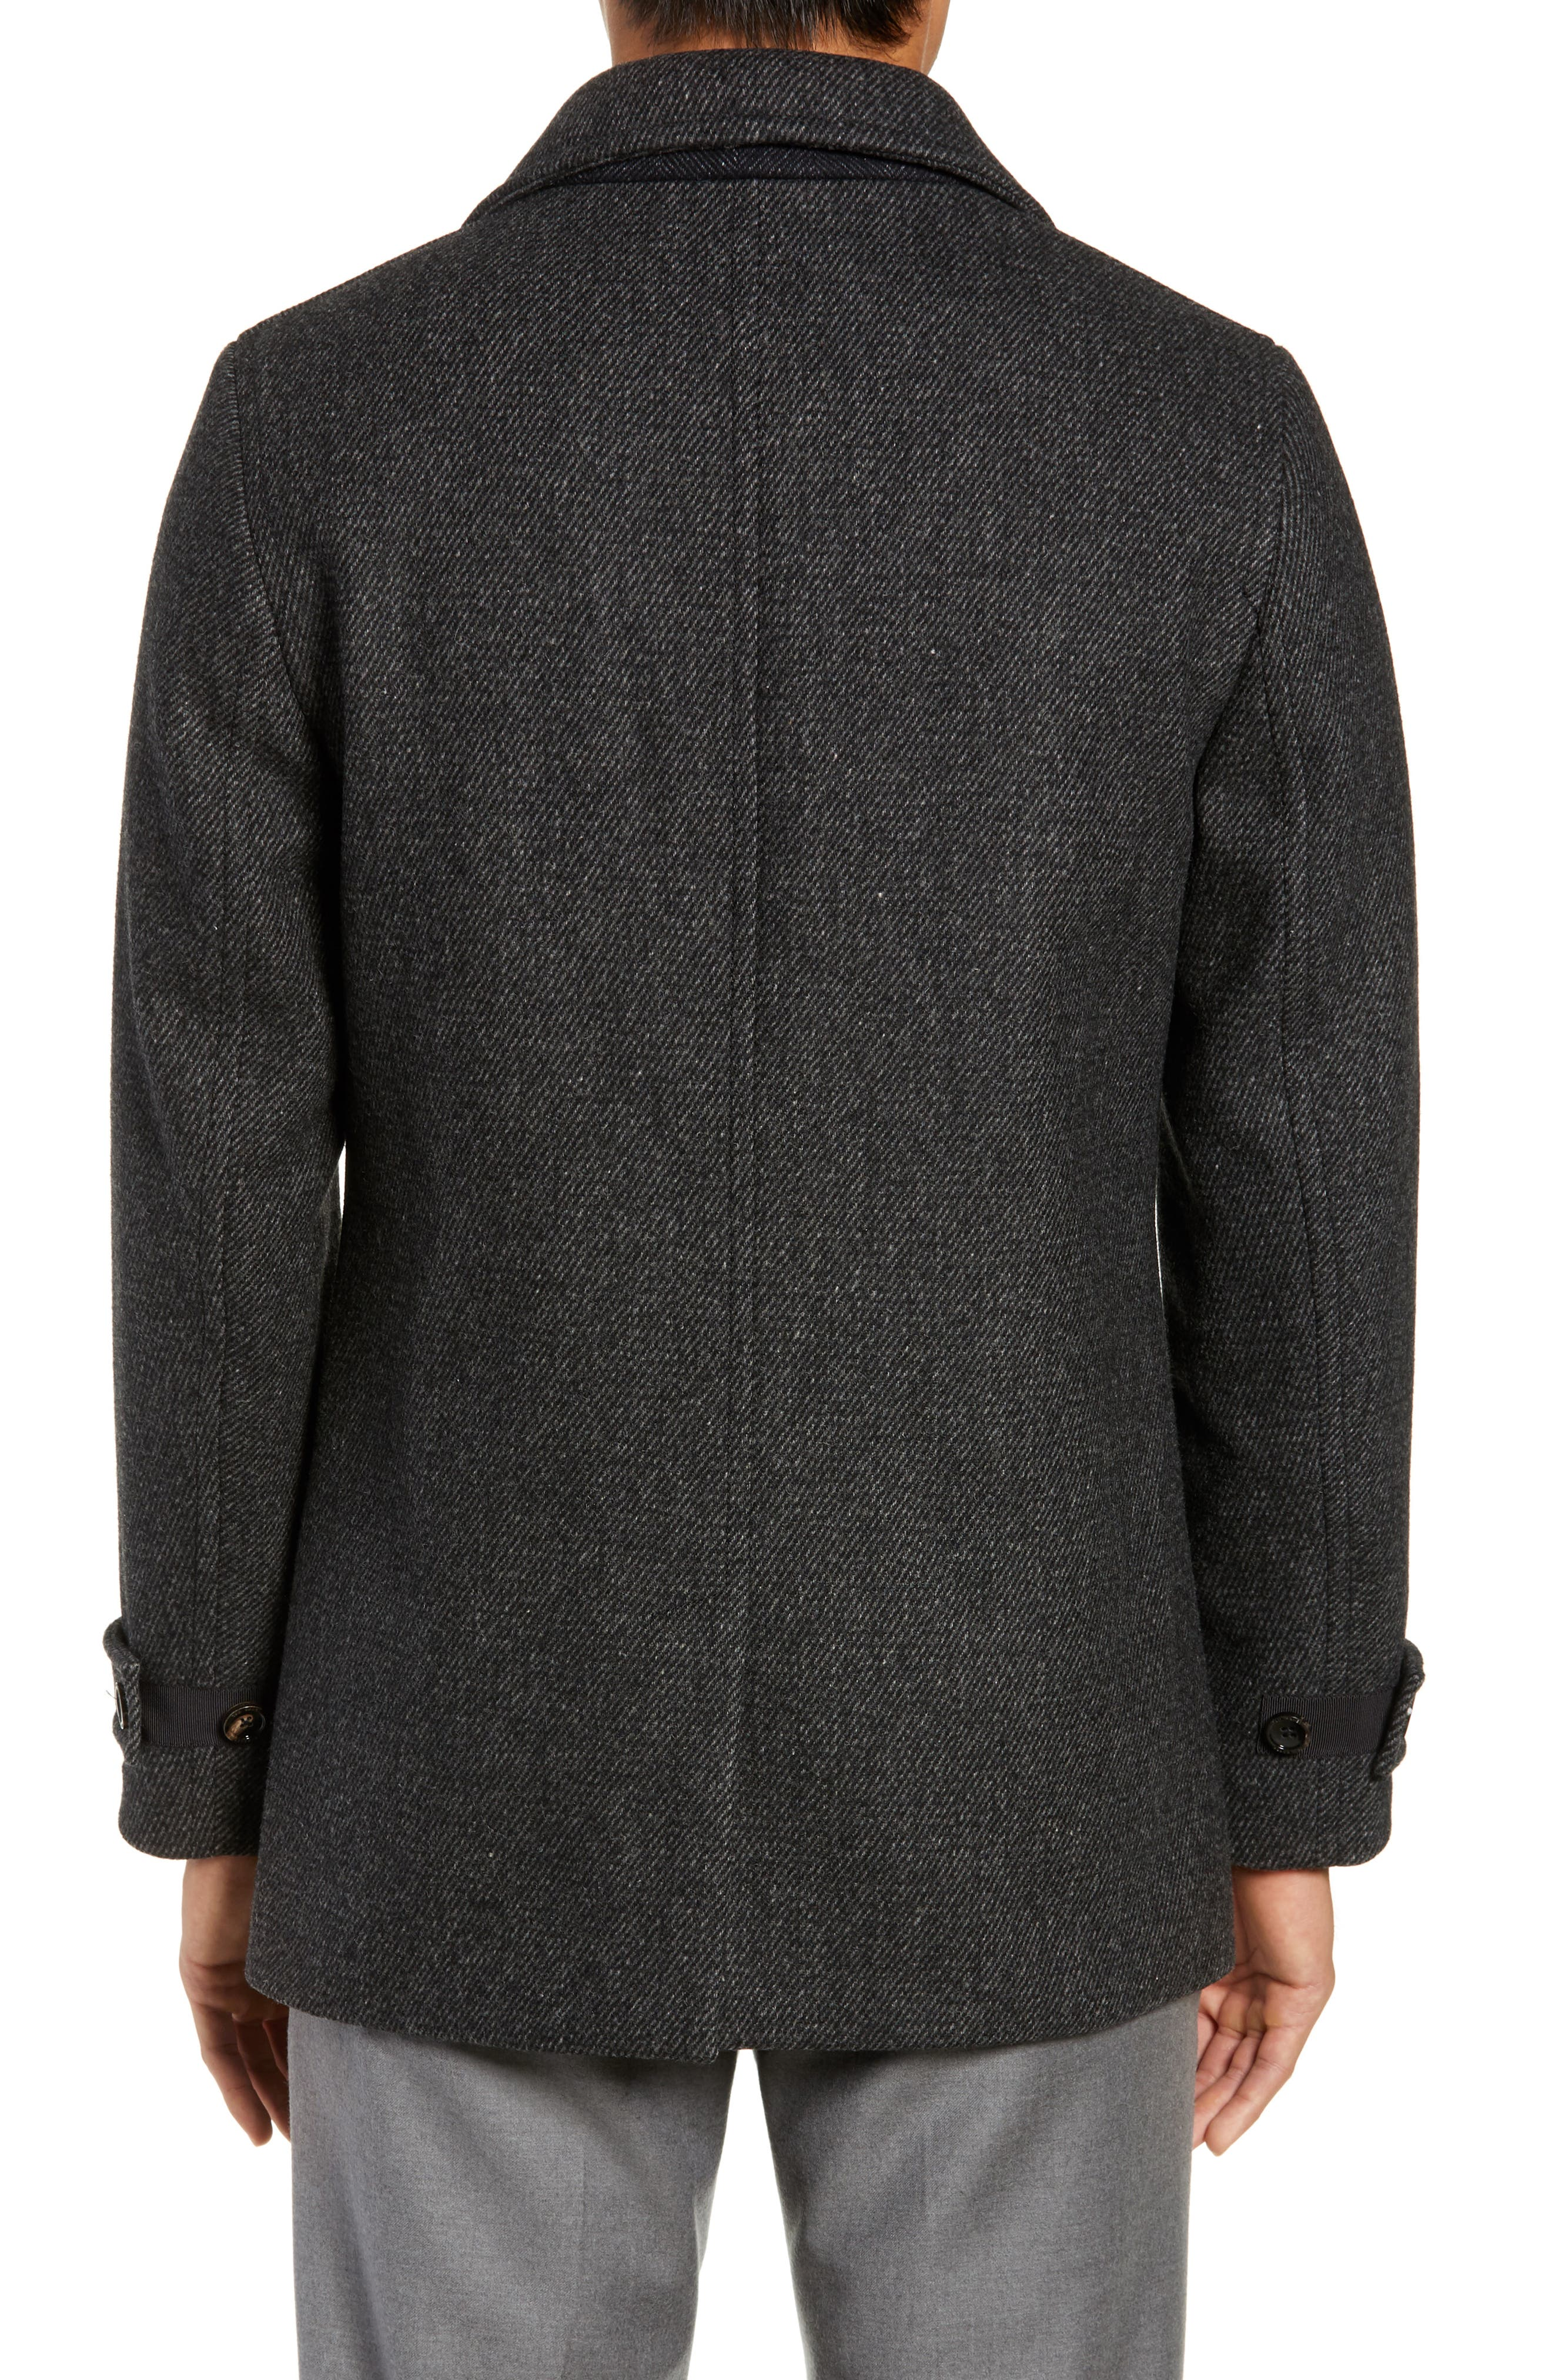 Grilled Wool Blend Peacoat,                             Alternate thumbnail 2, color,                             GREY